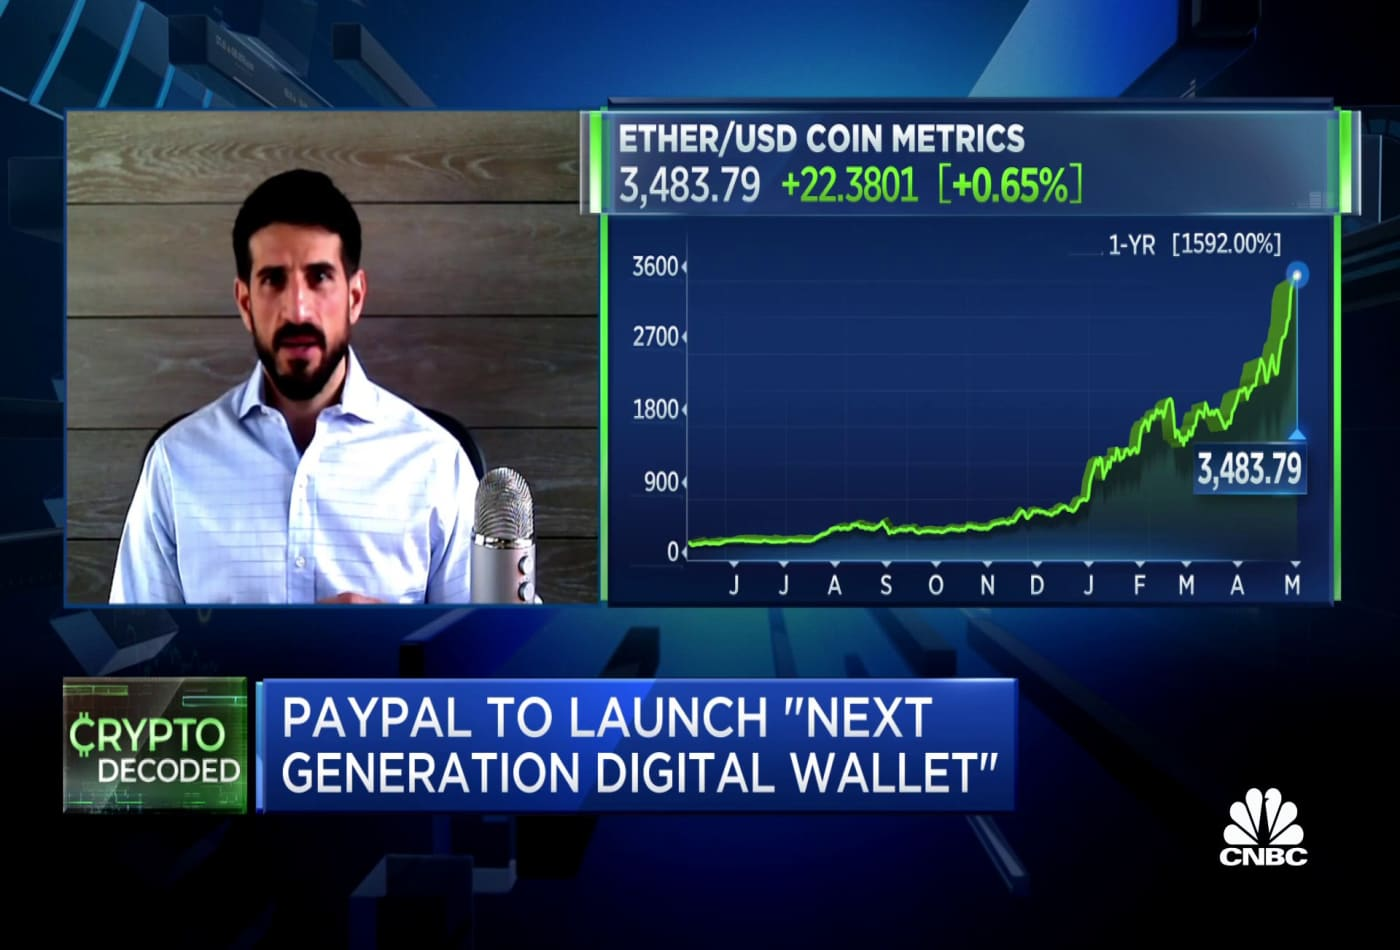 Paxos CEO on powering PayPal's crypto 'next generation digital wallet'